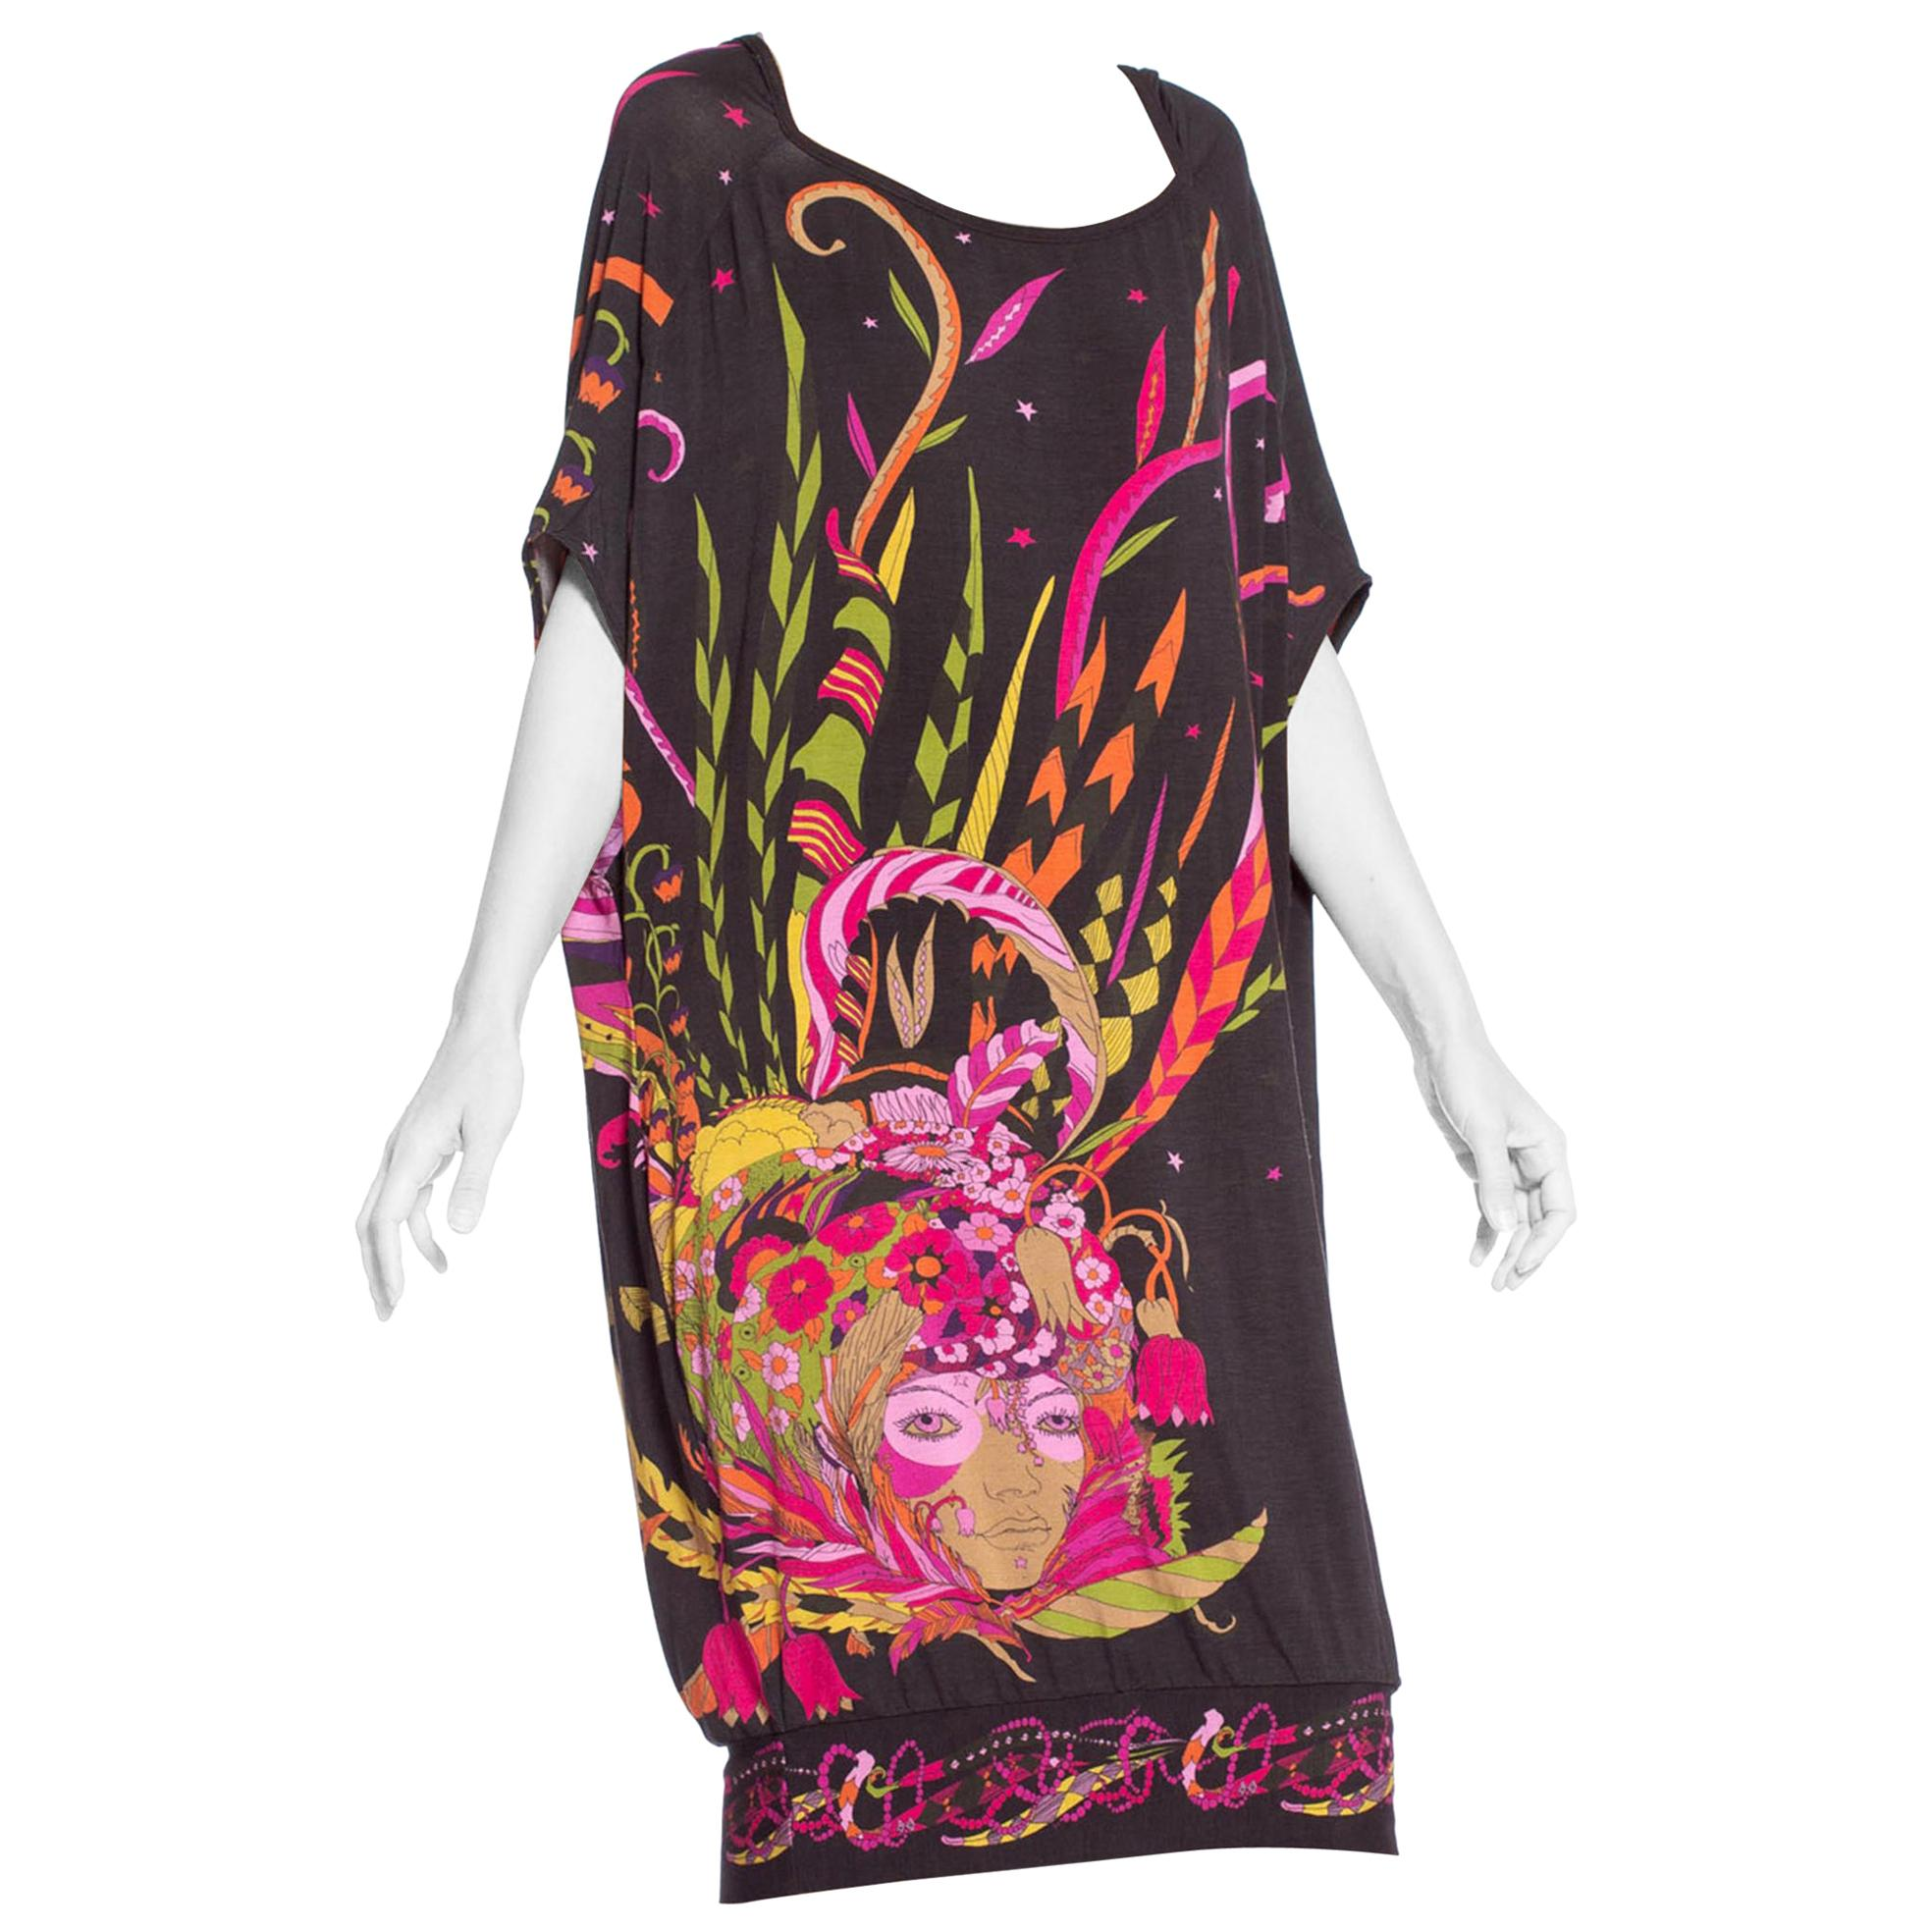 MORPHEW COLLECTION 1970'S Psychedelic Fortune Teller Print Dress